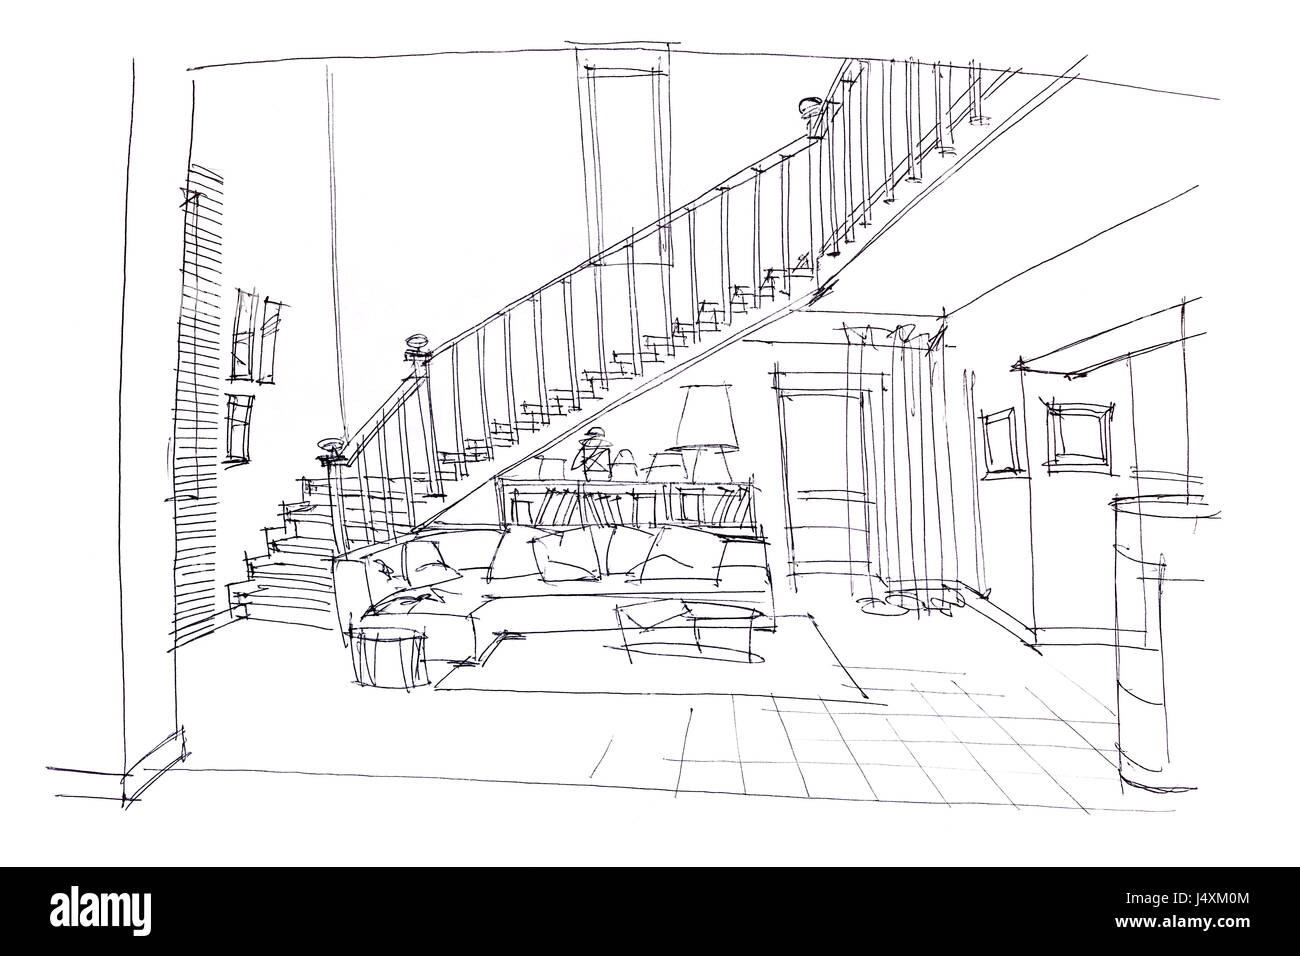 Sketch Of Living Room Design With Furniture In Multistory Apartment Stock Photo Alamy